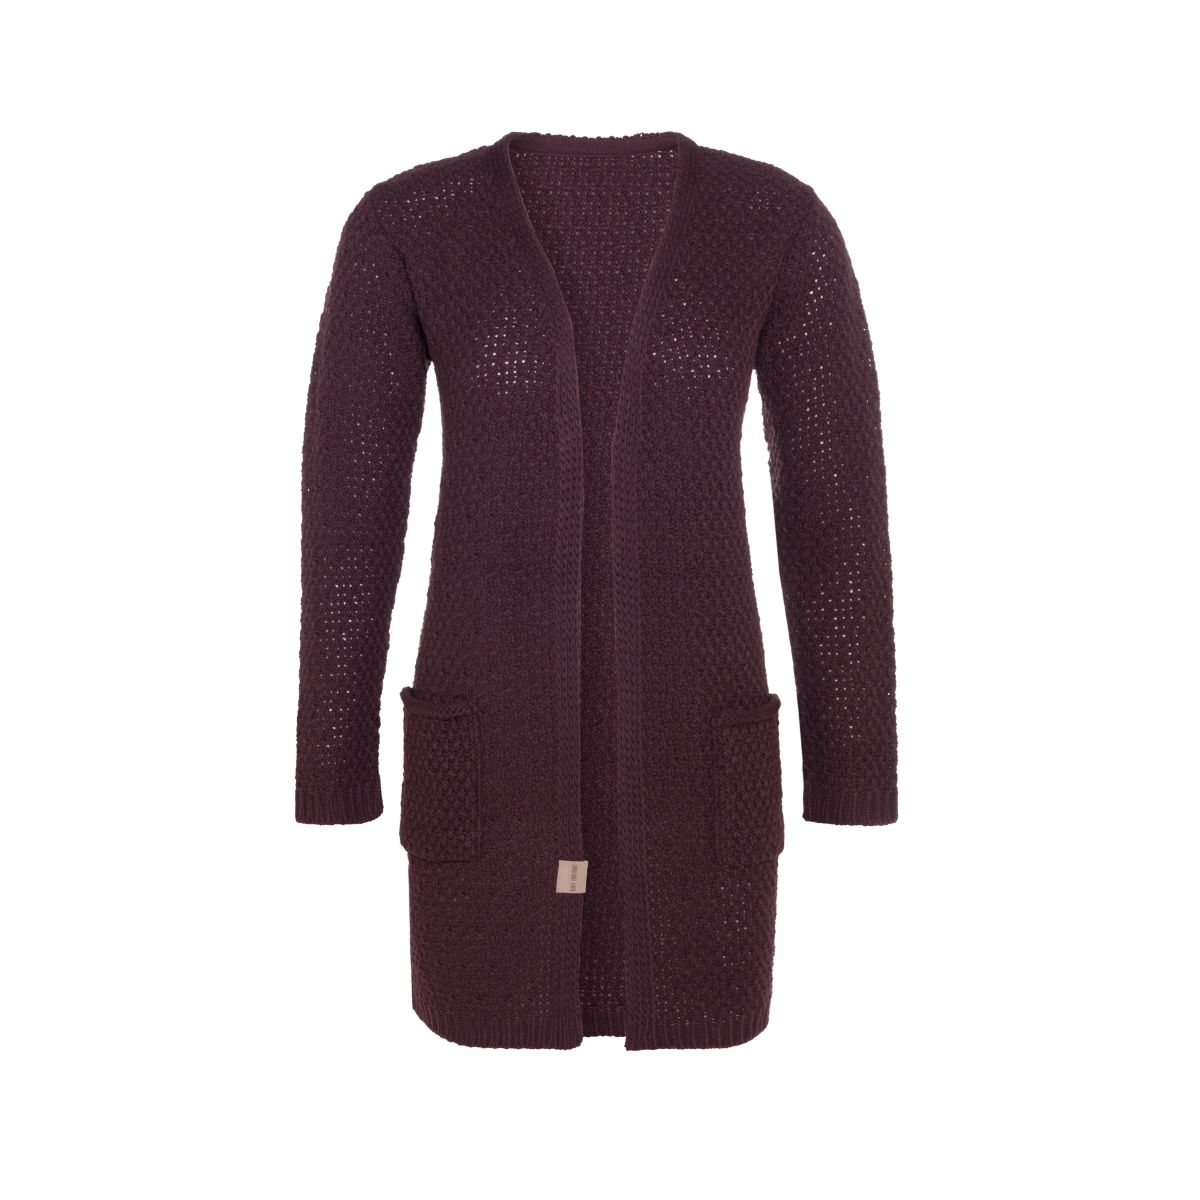 luna knitted cardigan aubergine 4042 with side pockets